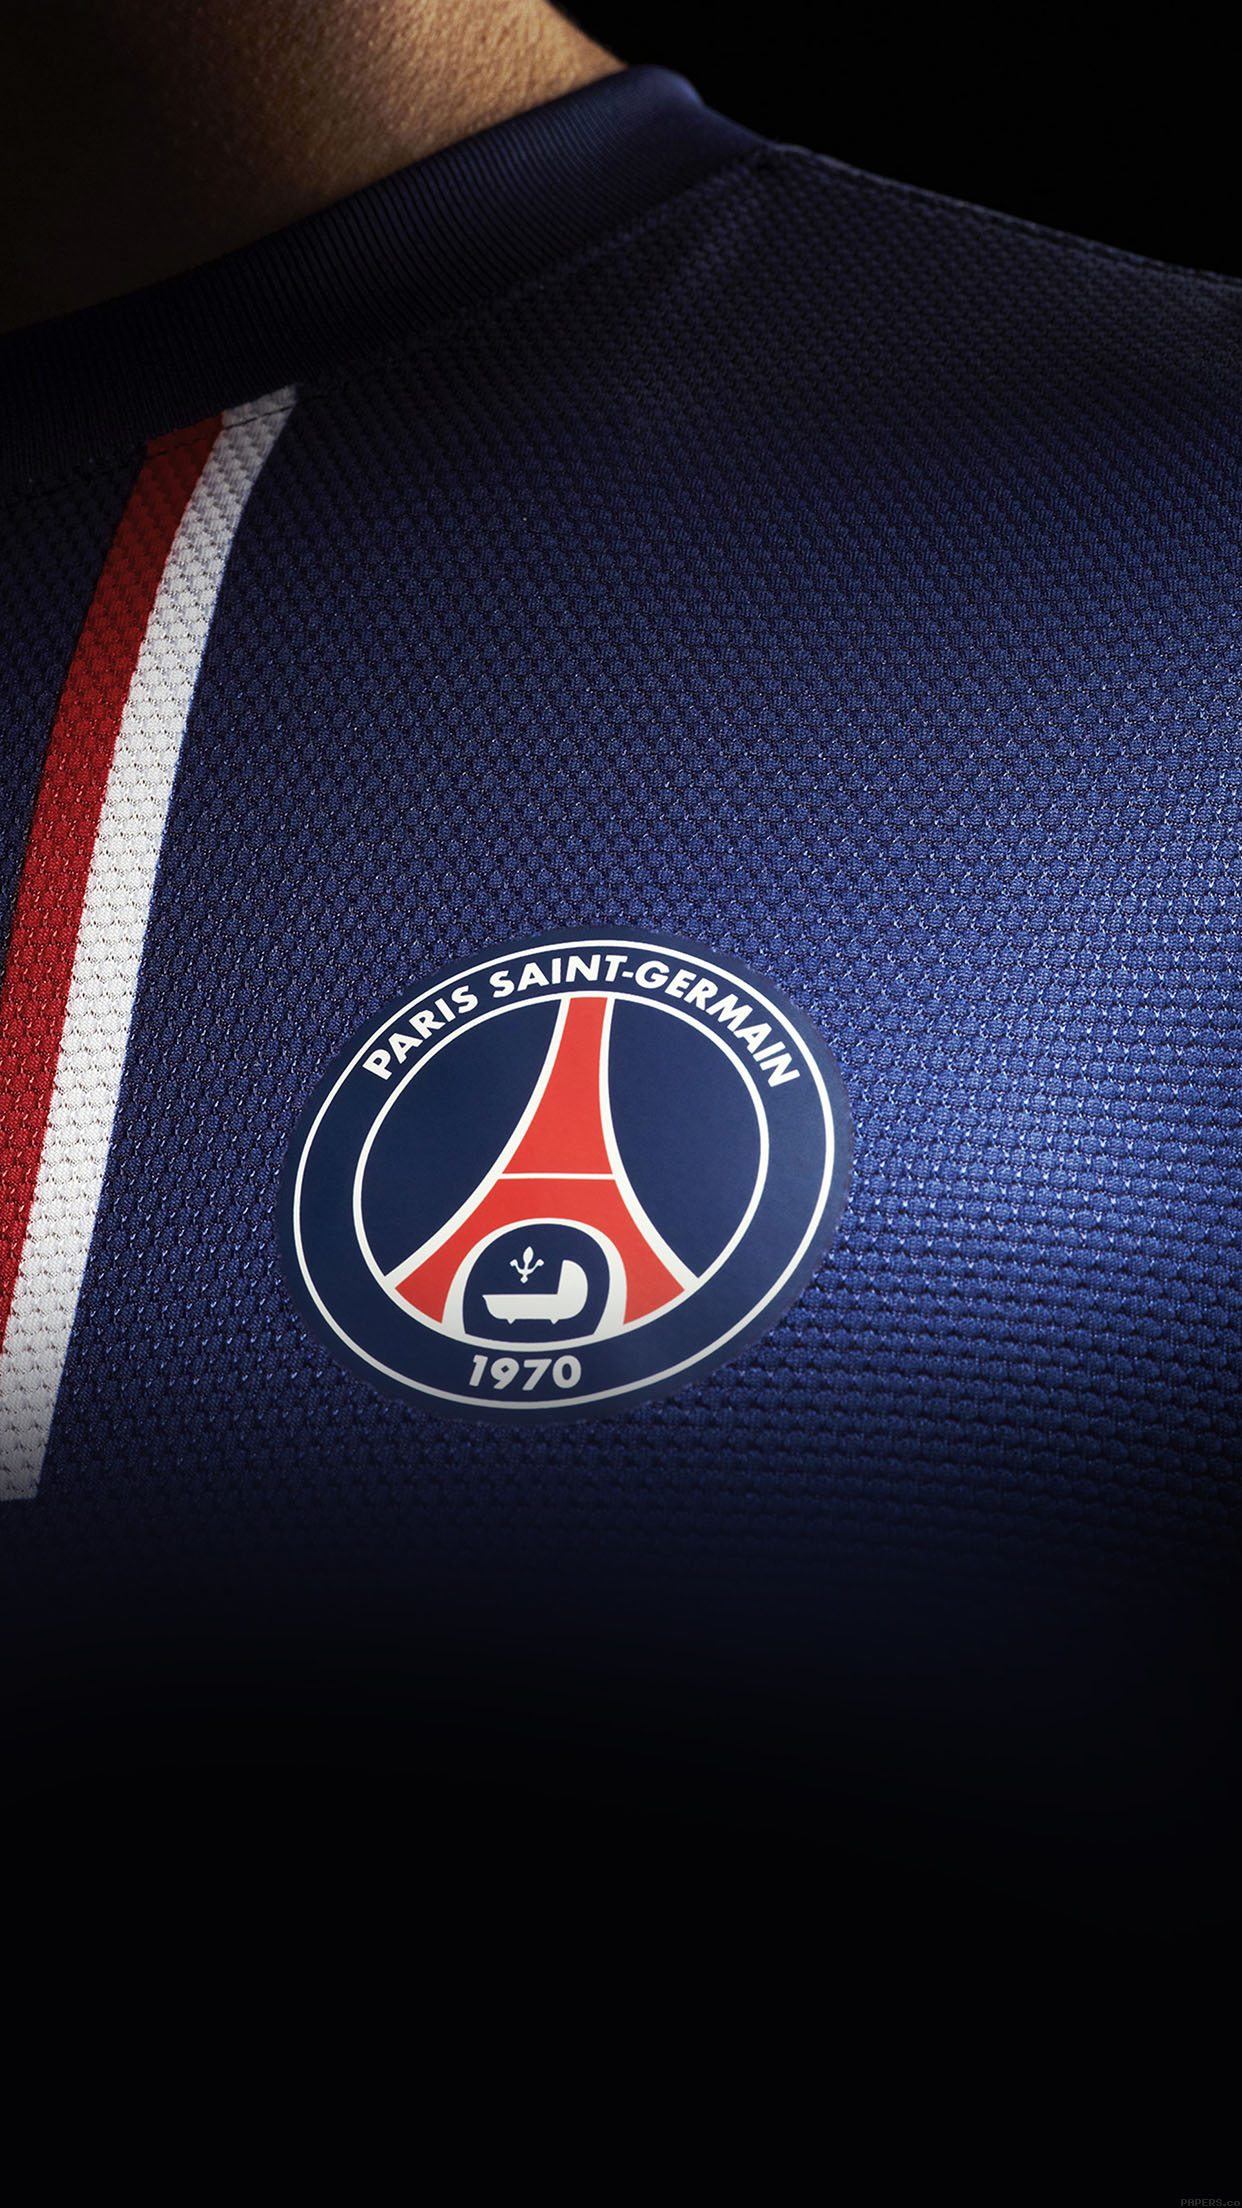 ac61-wallpaper-psg-paris-saint-germain-fc-jersey-logo-soccer